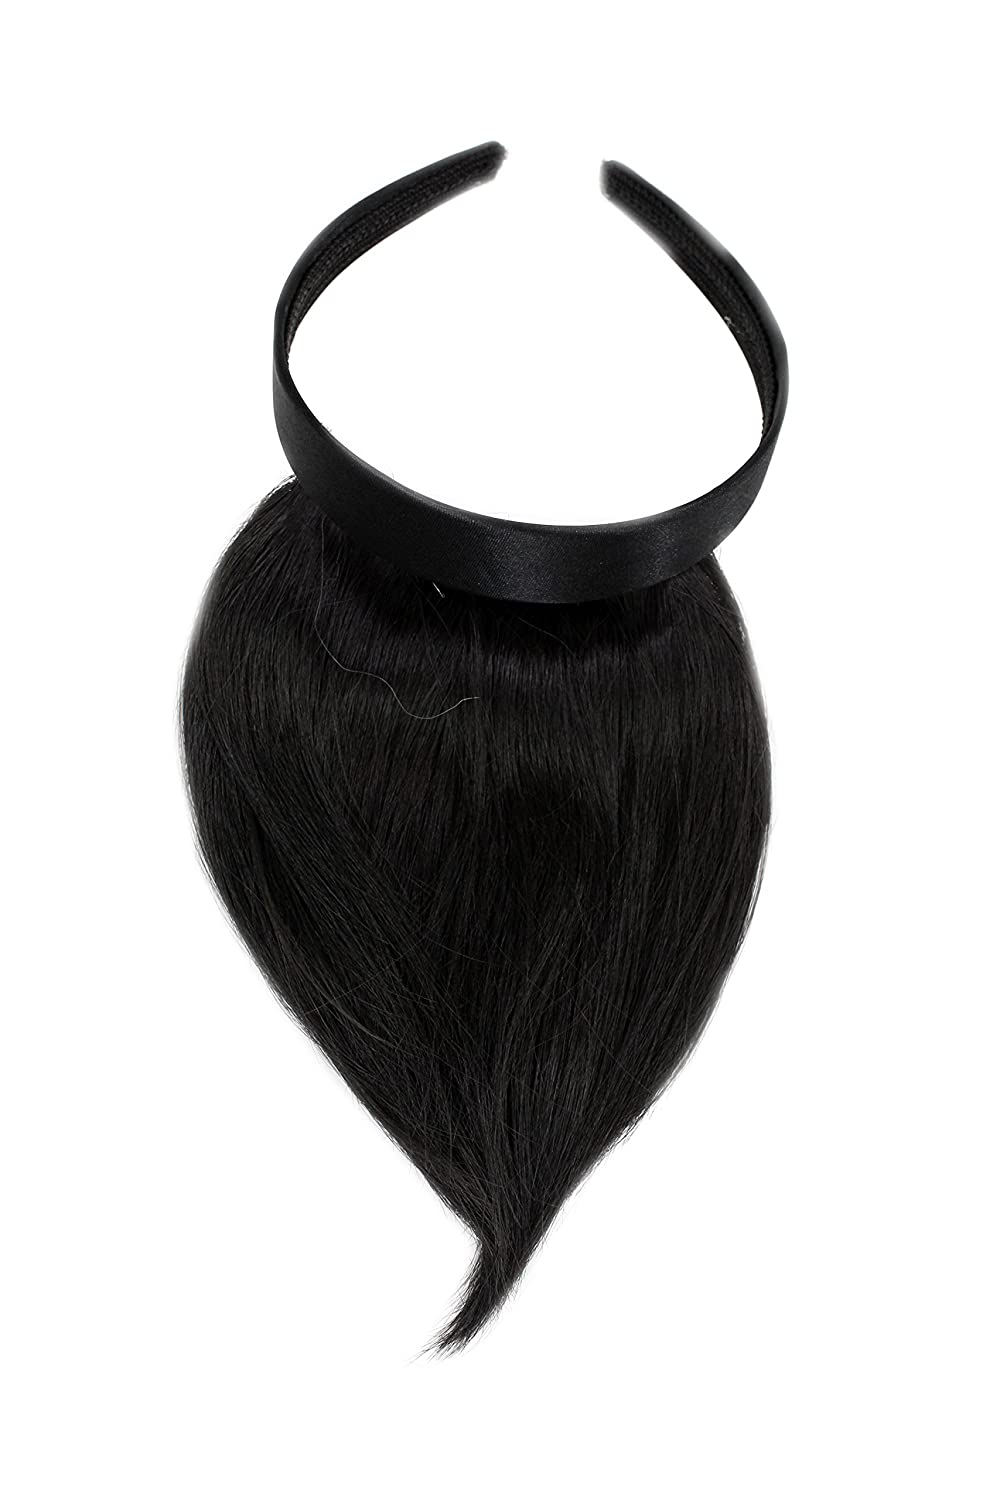 WIG ME UP ® - Peluca, flequillo de clip-in, con diadema, aparencia muy natural, castaño oscuro (3) HA073T-3 VK Event Fashion HA073T-3(384)